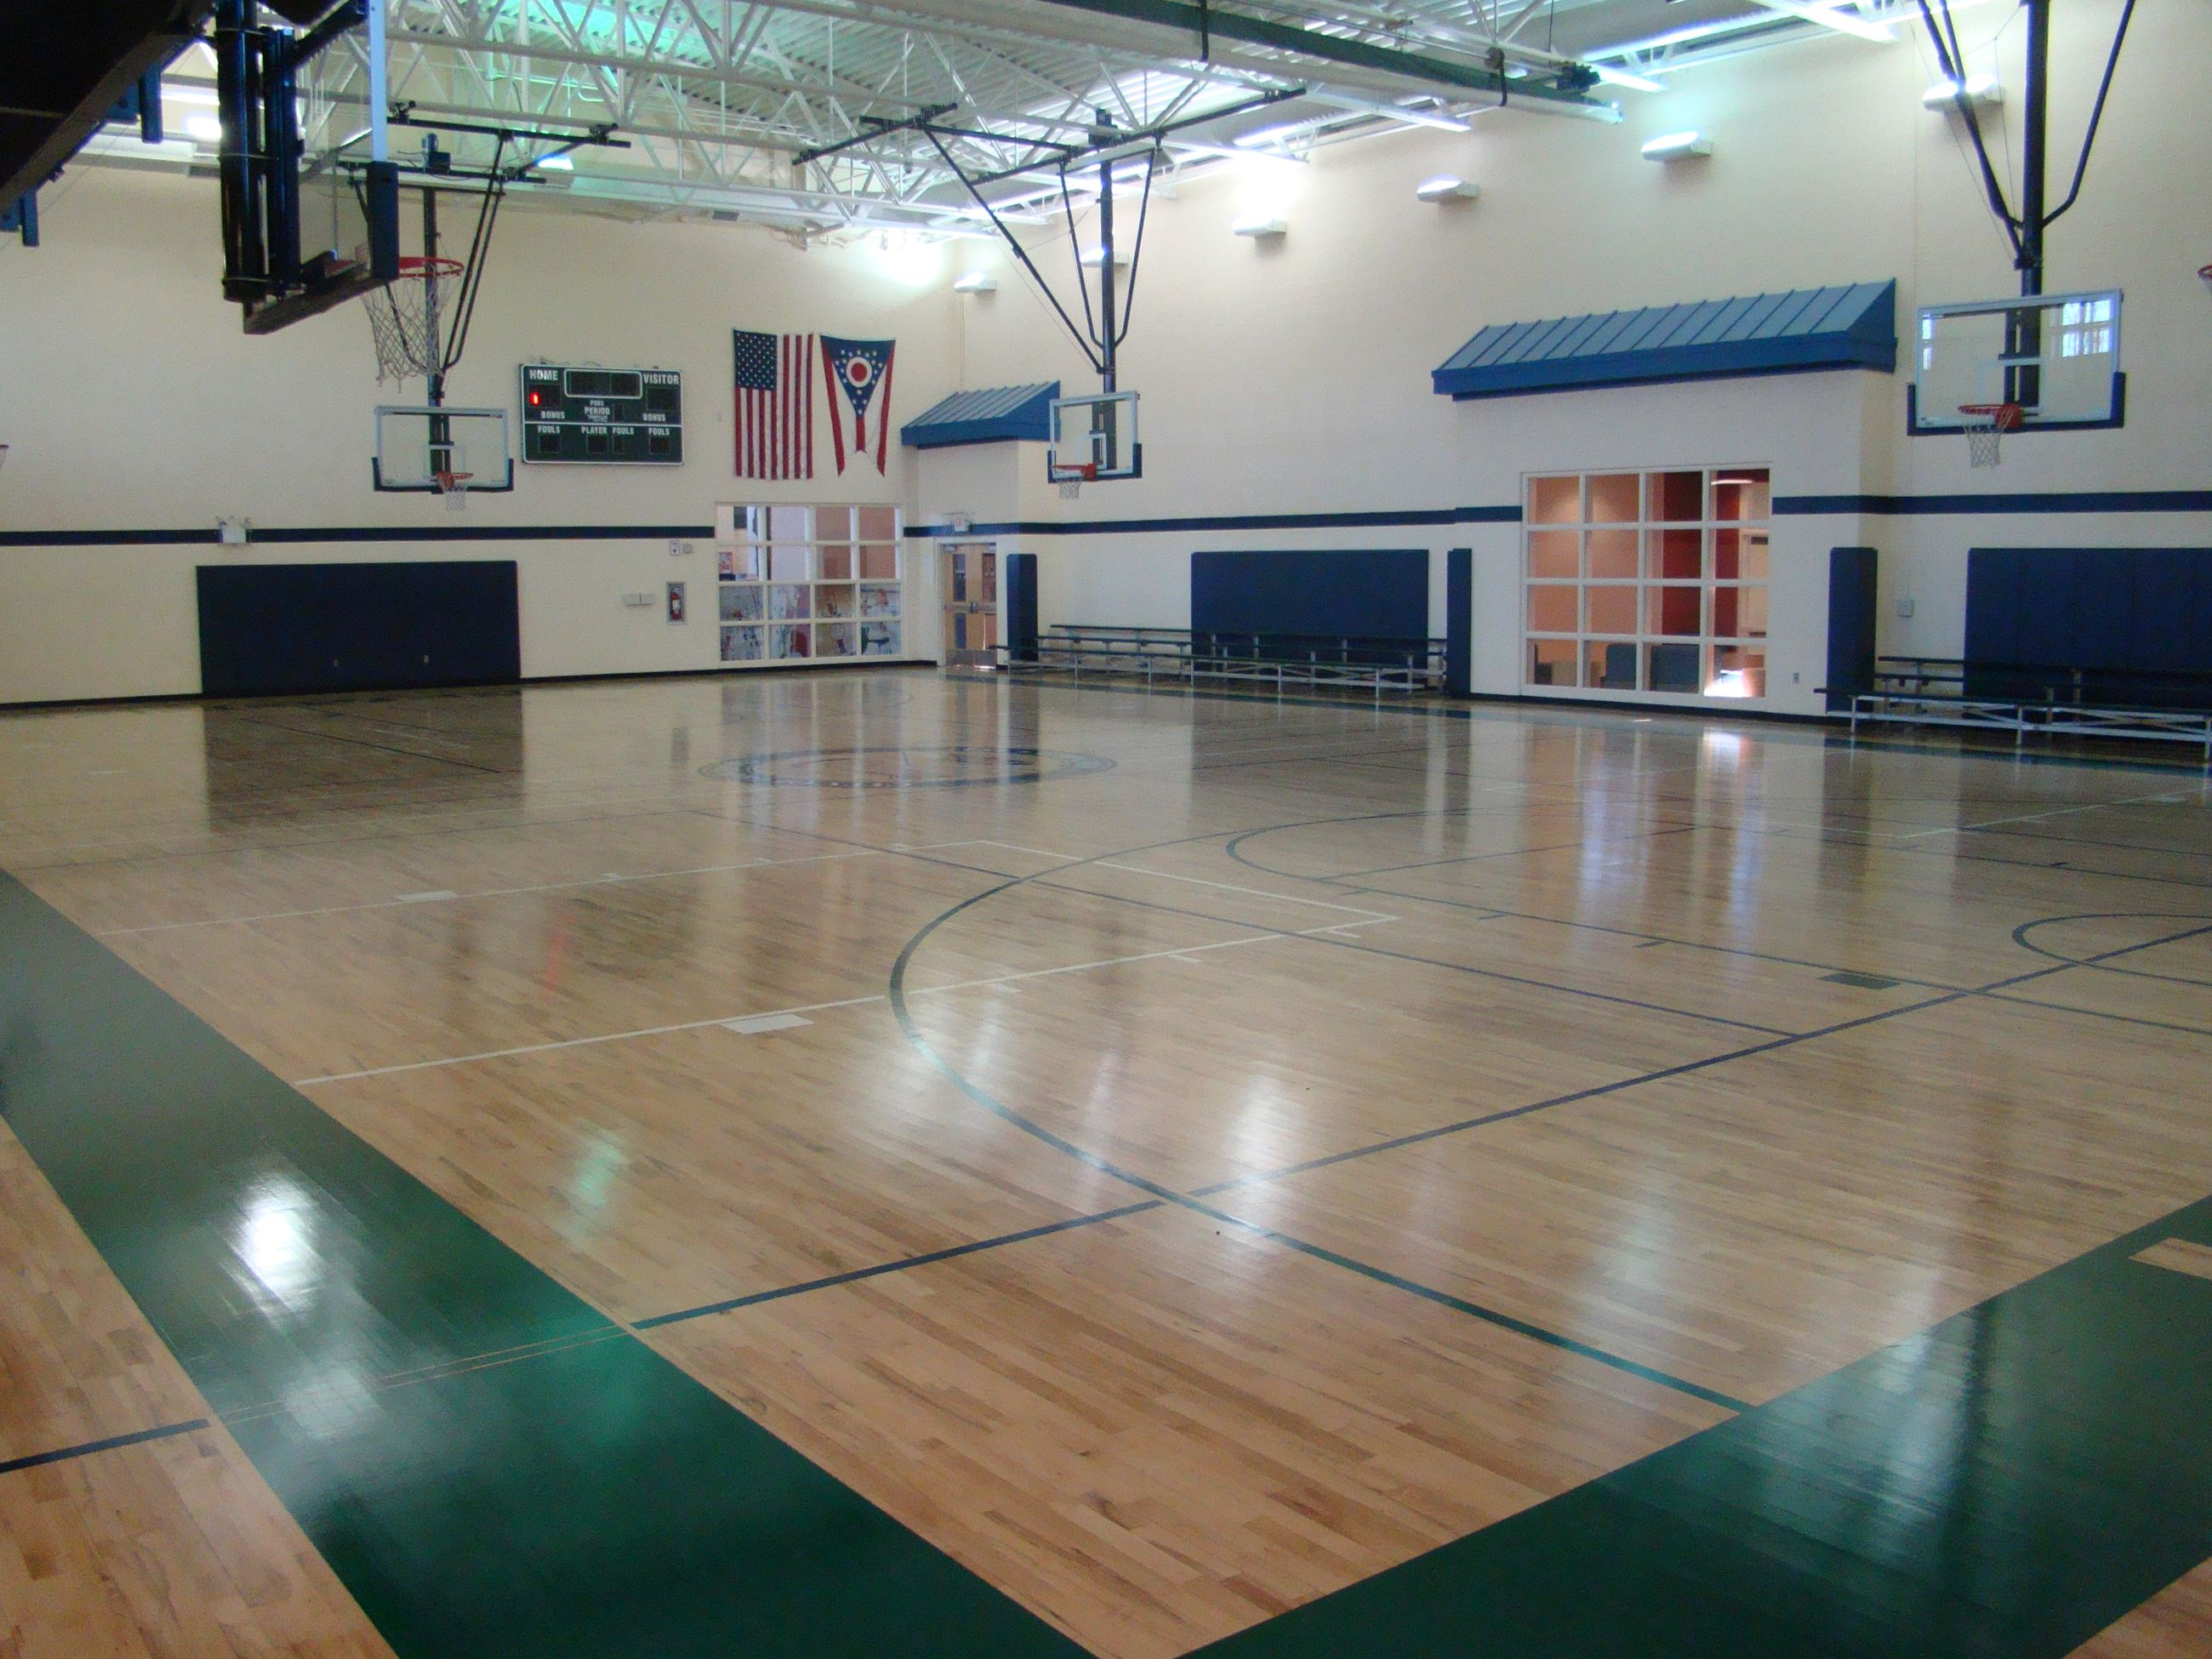 The Recreation Center's gymnasium floor.